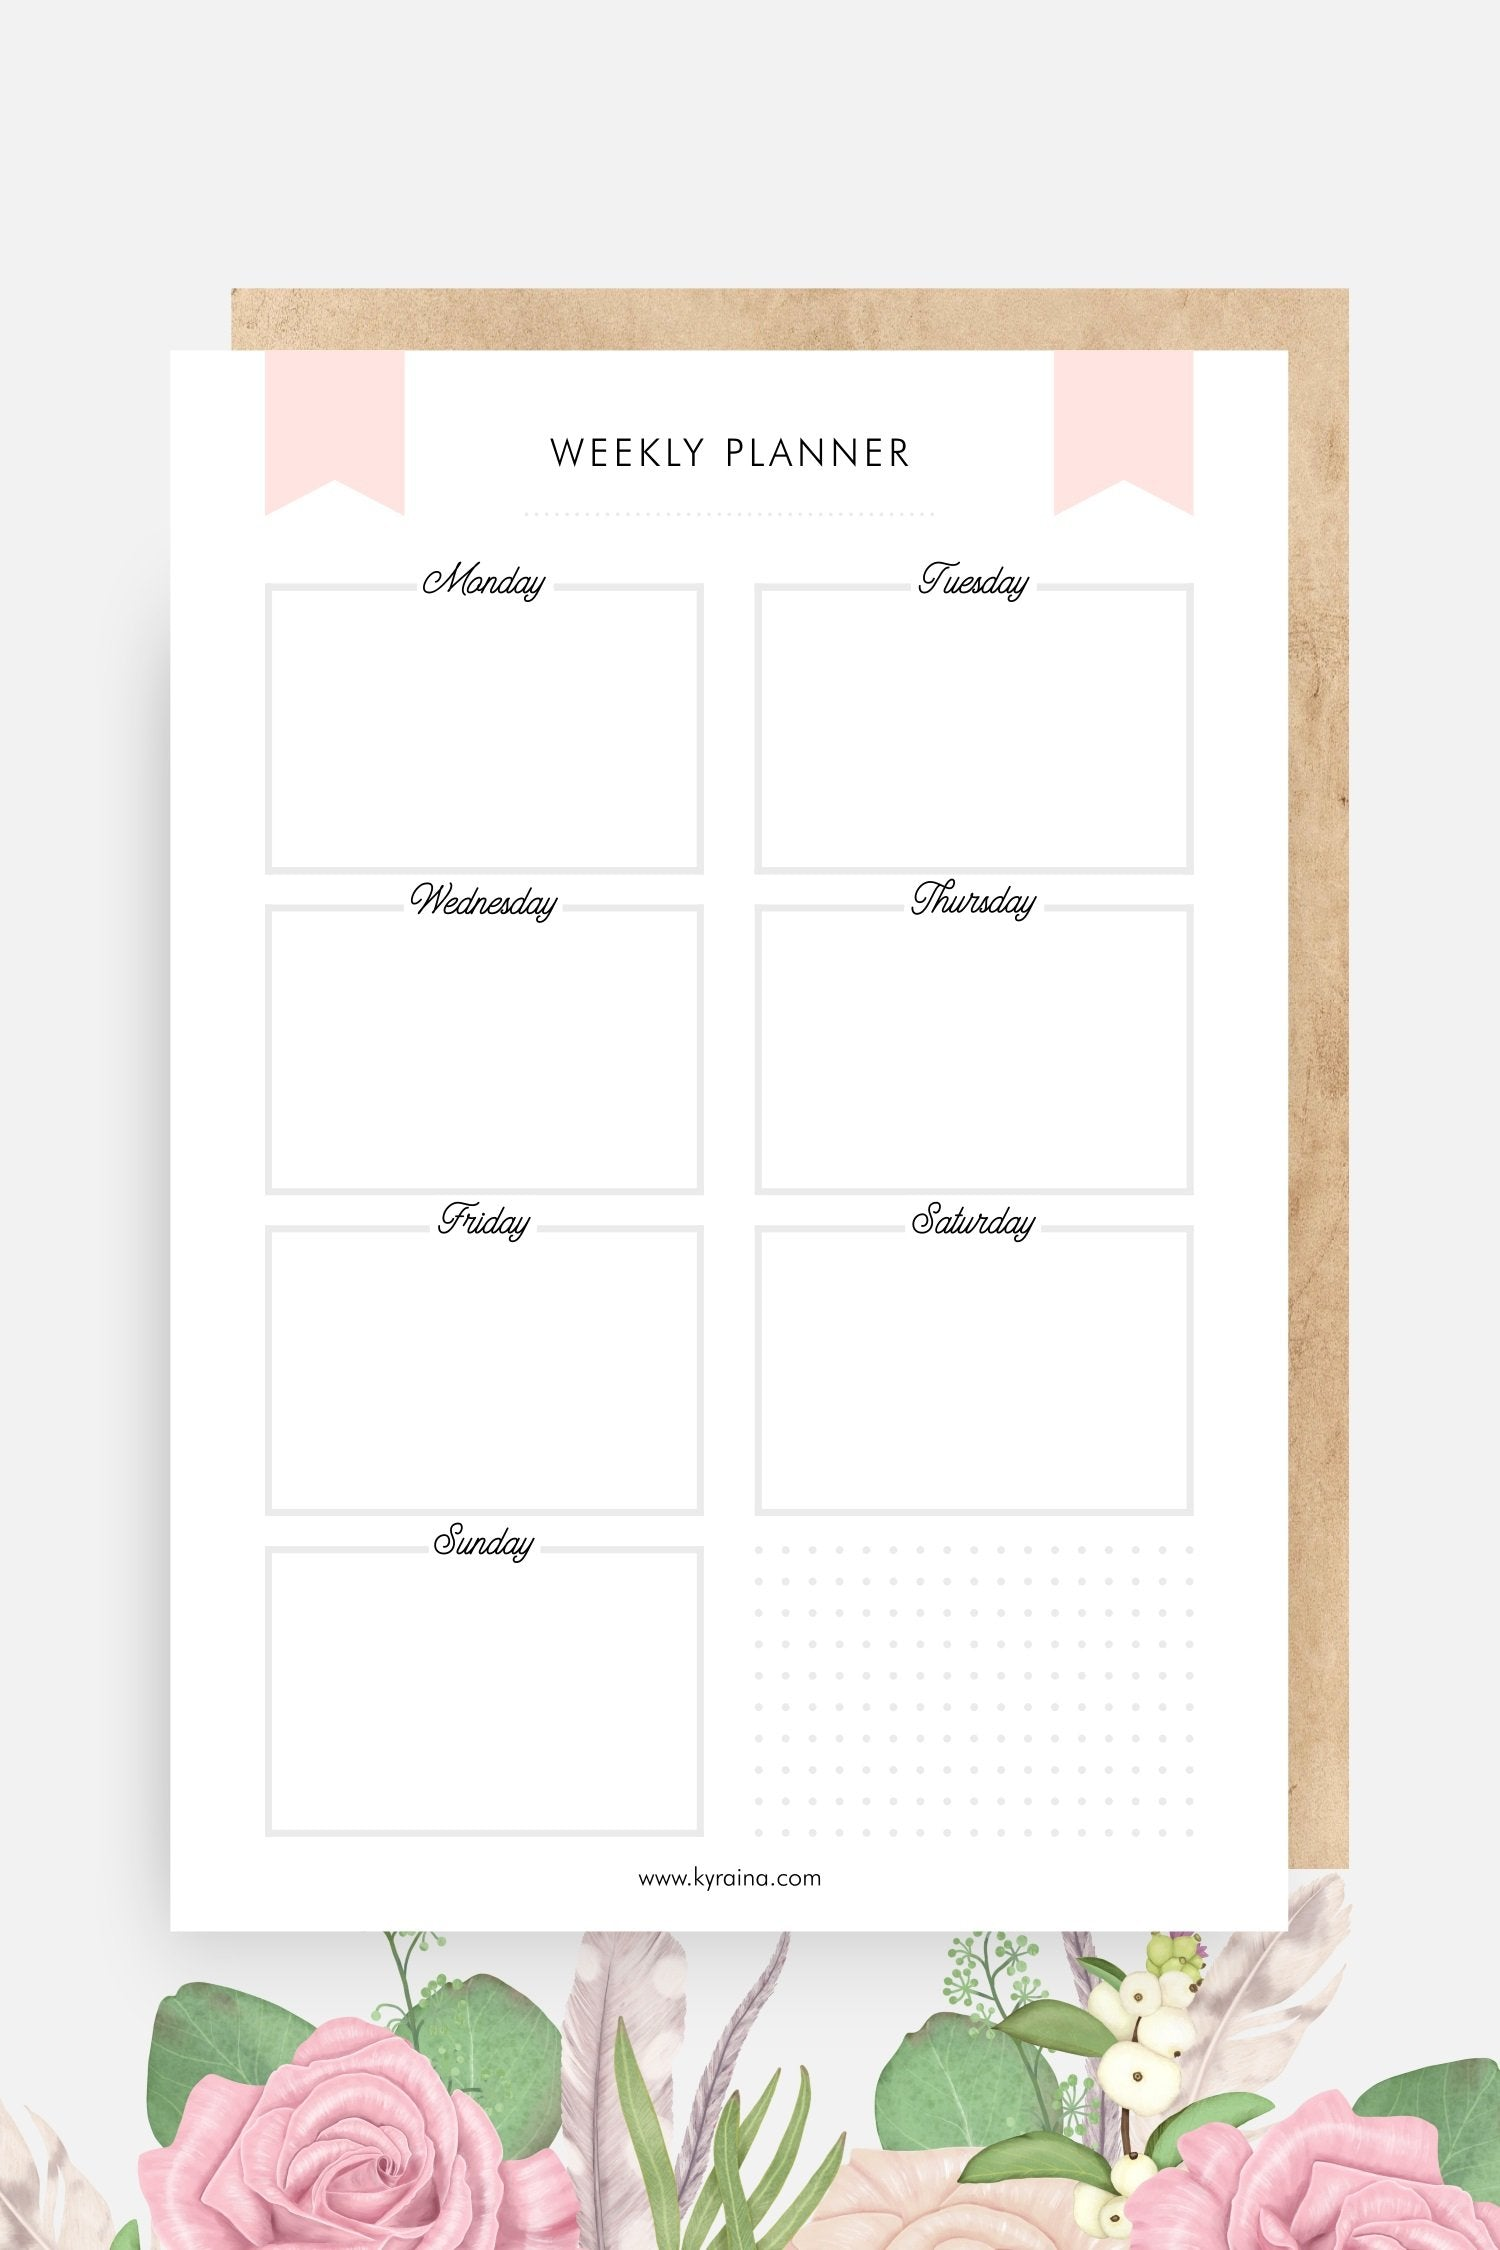 Free Pinky Weekly Planner printable template schedule for school and planner organization